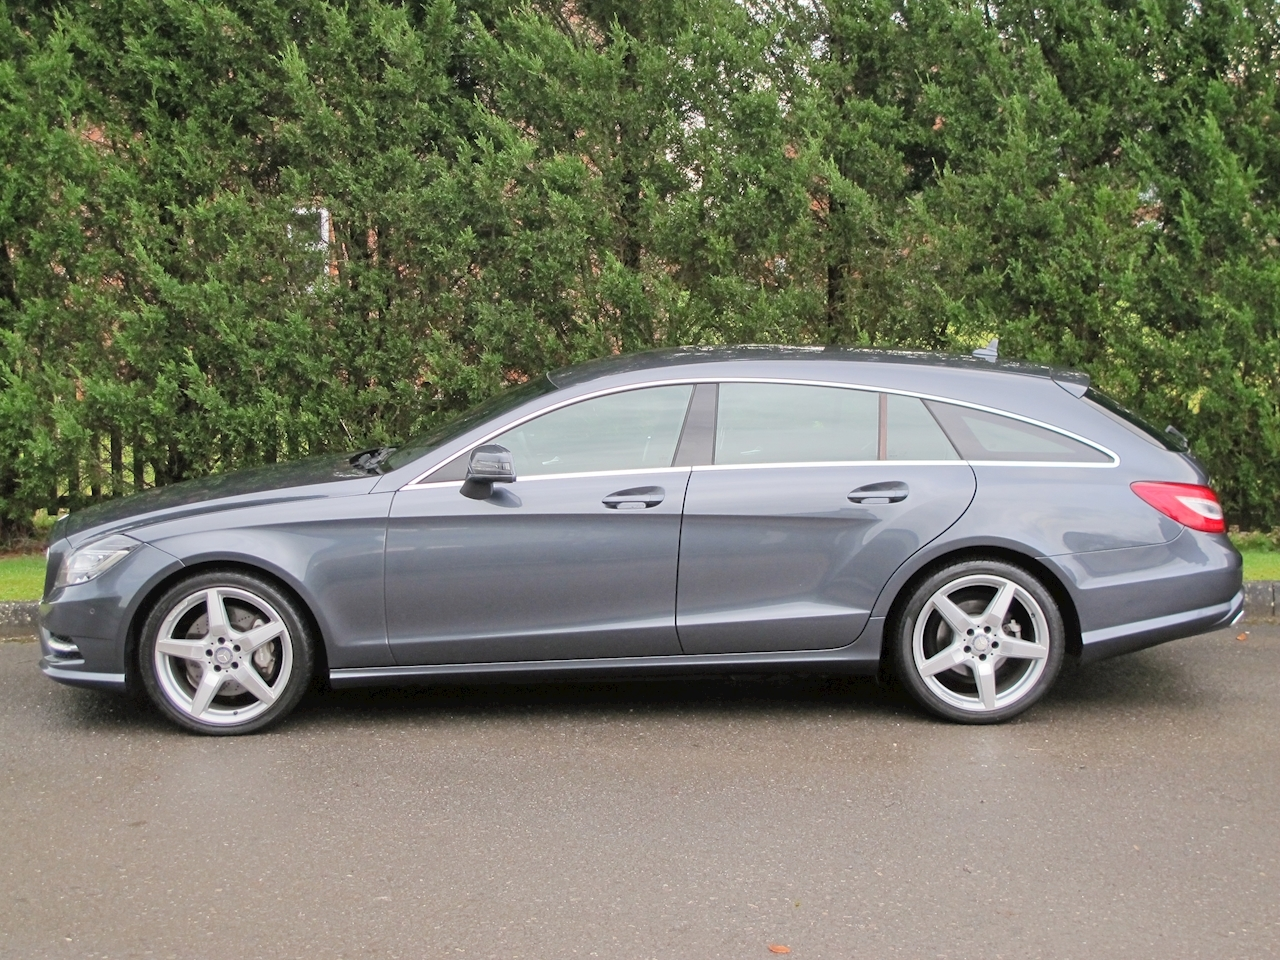 Mercedes-Benz Cls Cls350 Cdi Blueefficiency Amg Sport Estate 3.0 Automatic Diesel